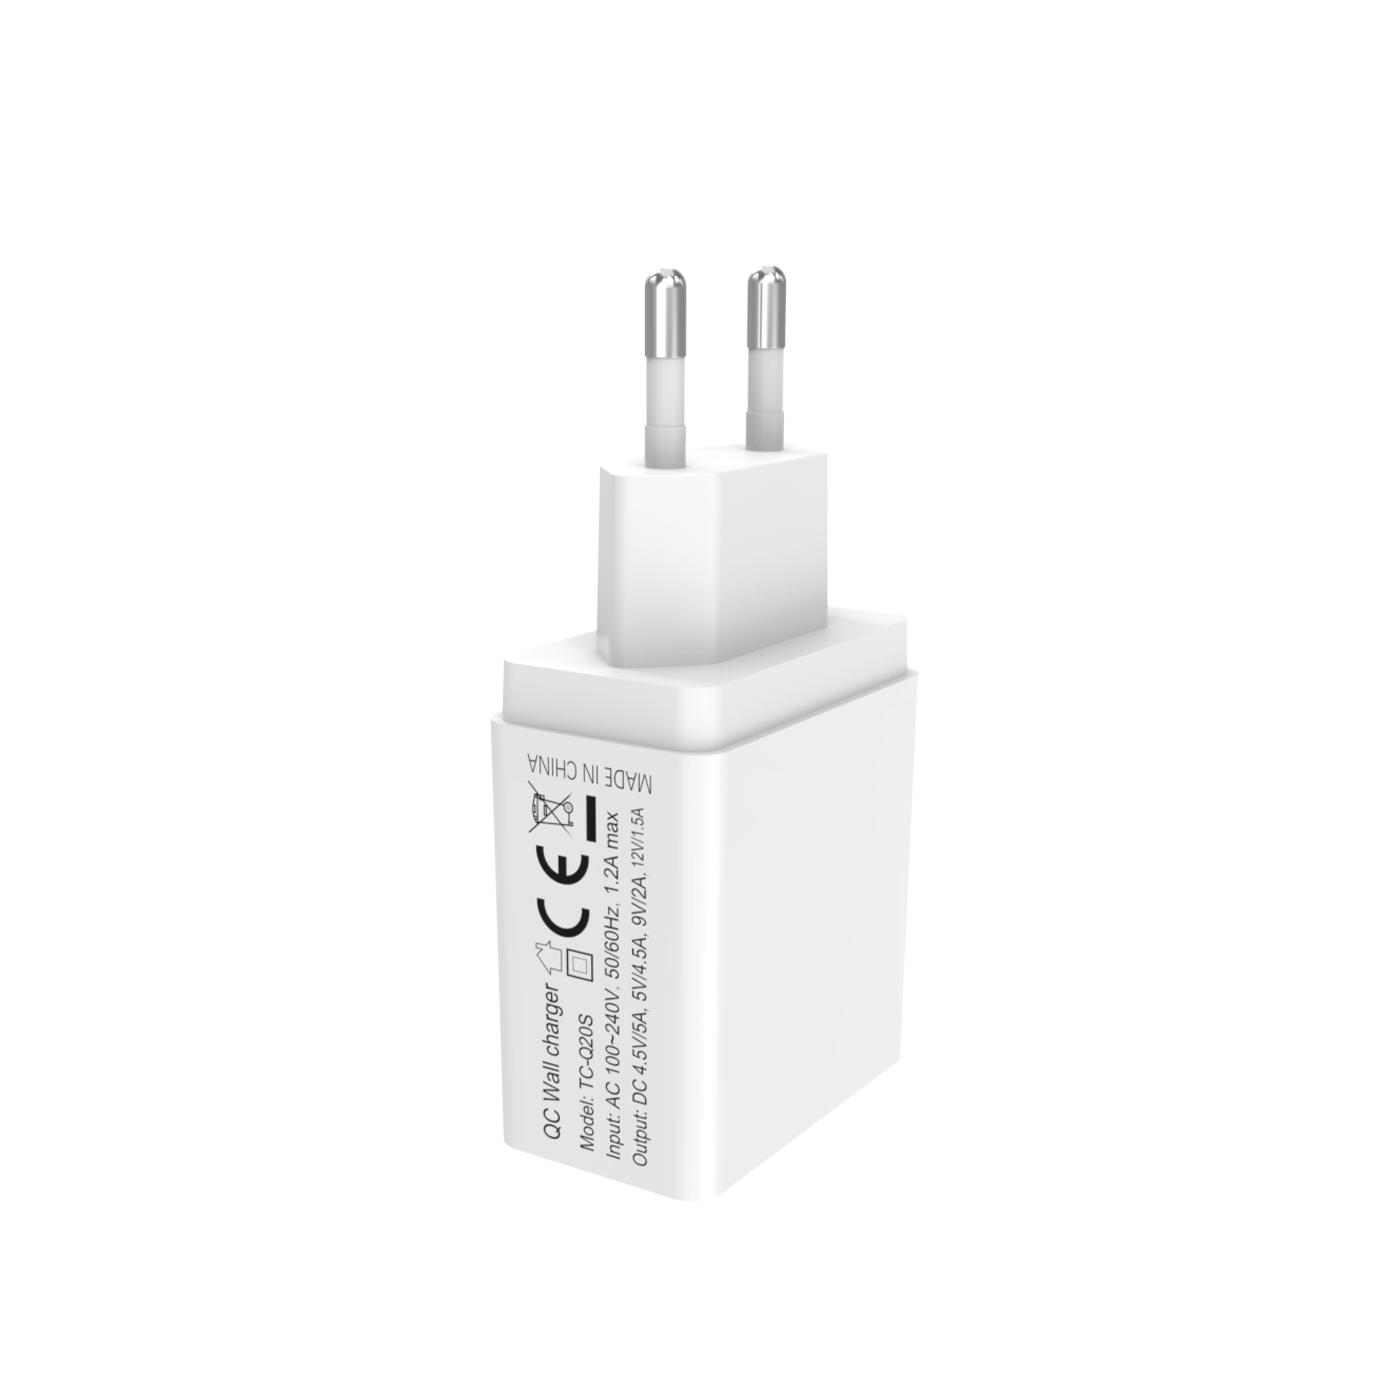 TC-Q20S 22.5W QC/FCP Wall charger